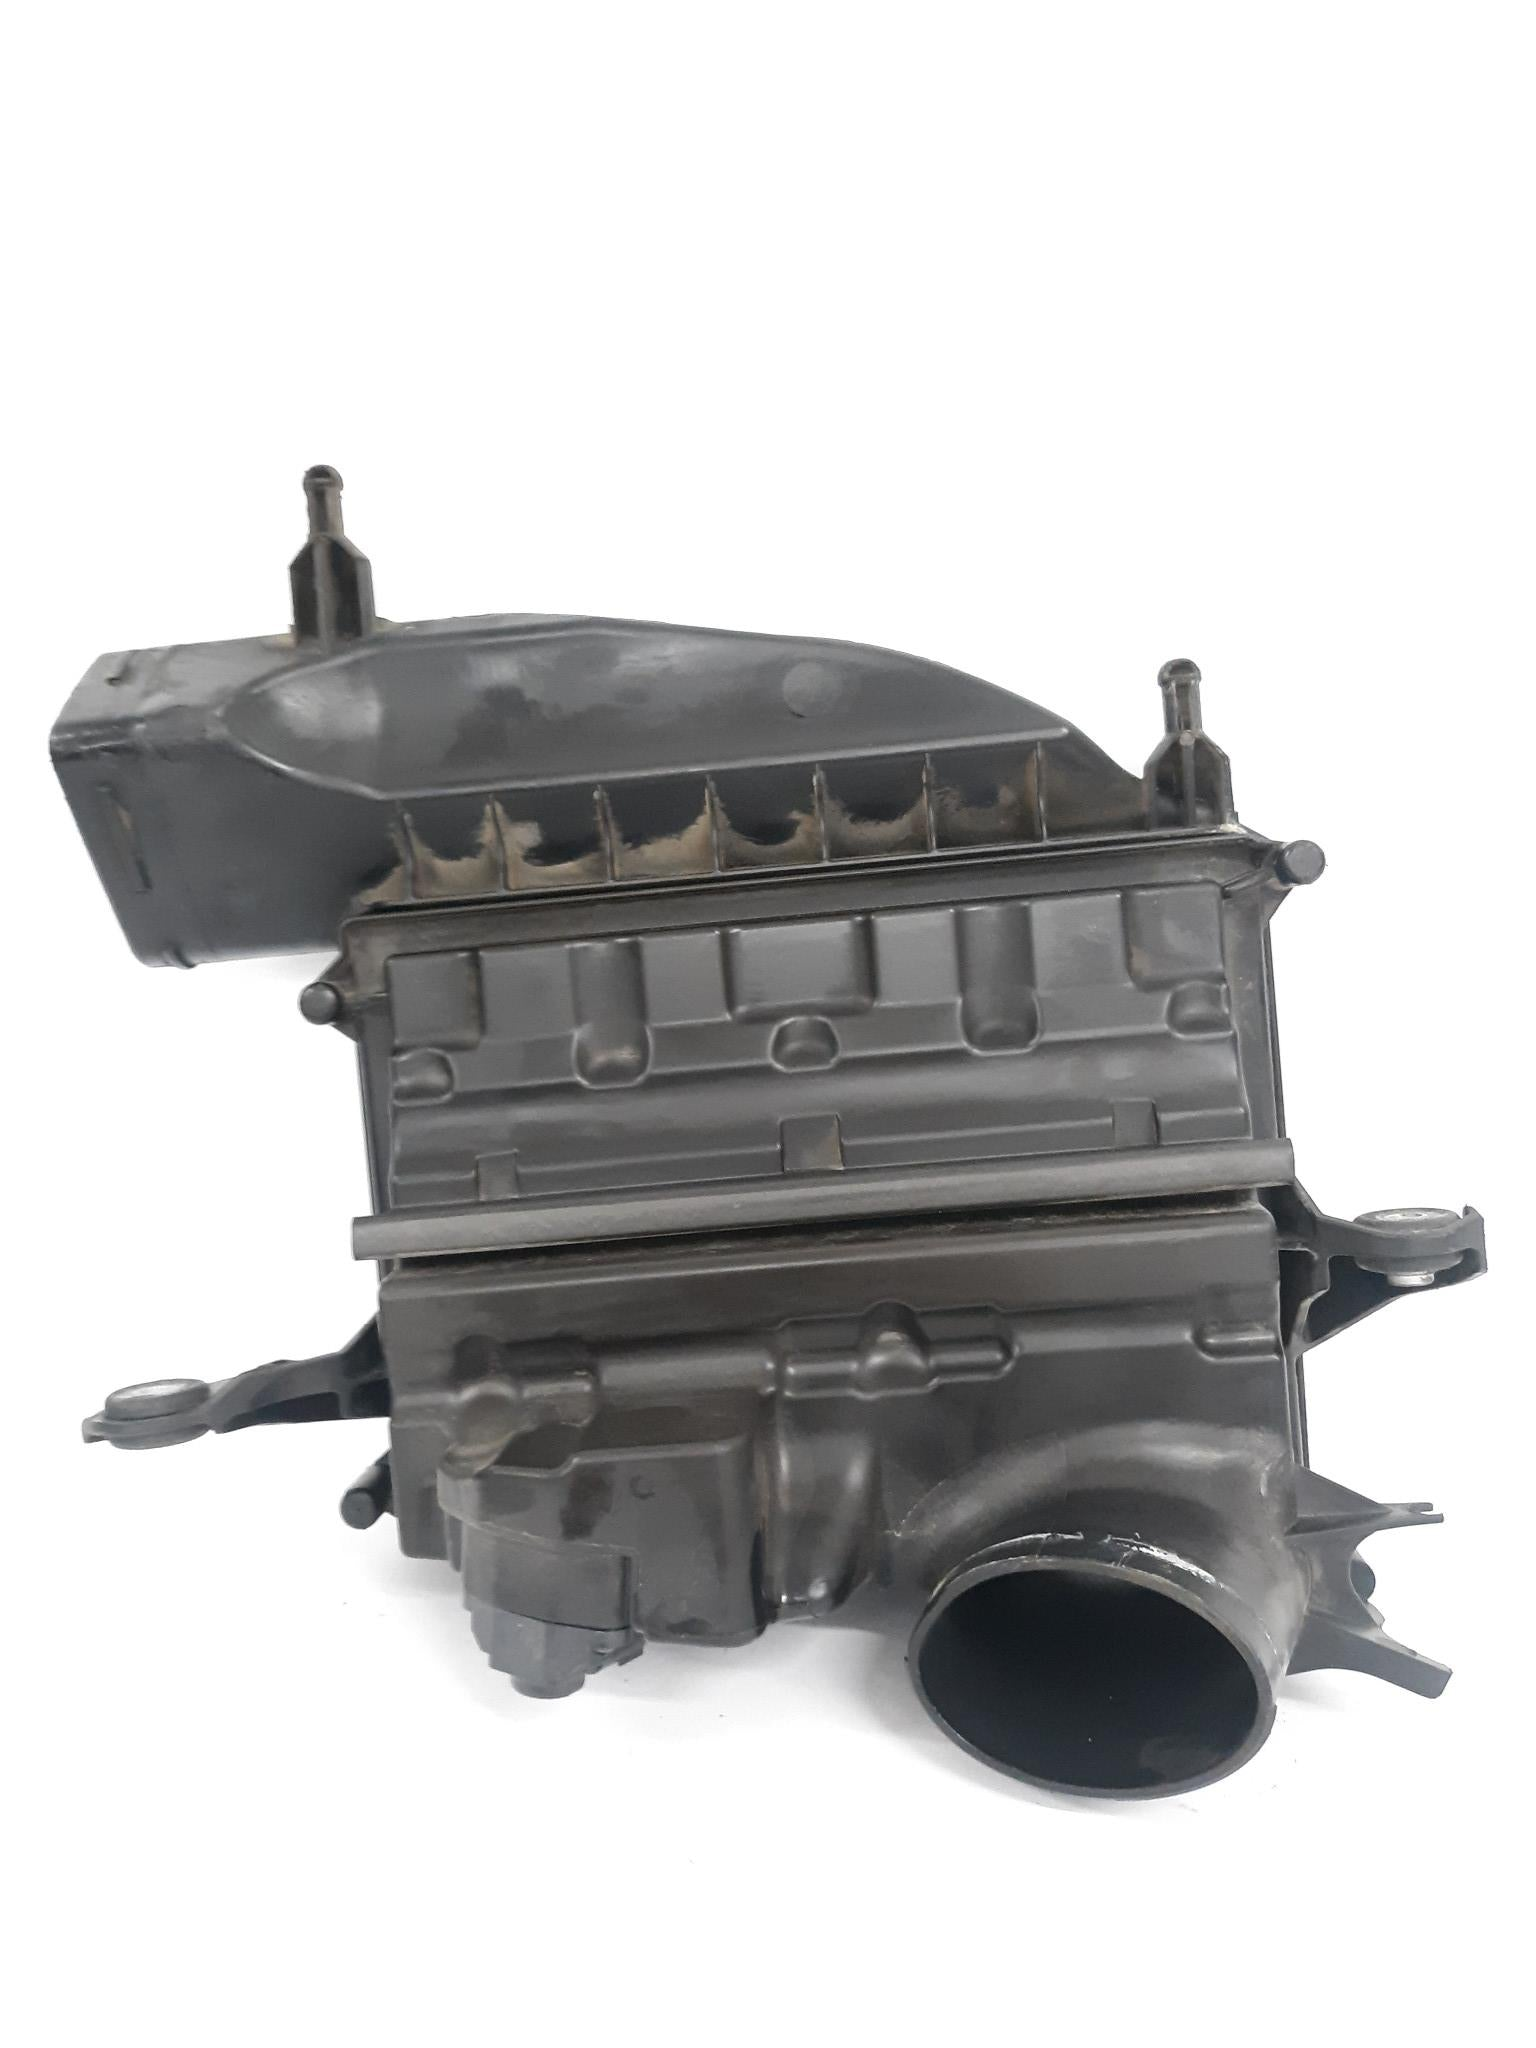 06 - 12 MERCEDES W251 W164 X164 R350 ML350 ENGINE AIR INTAKE BOX LEFT DRIVER OEM - Click Receive Auto Parts